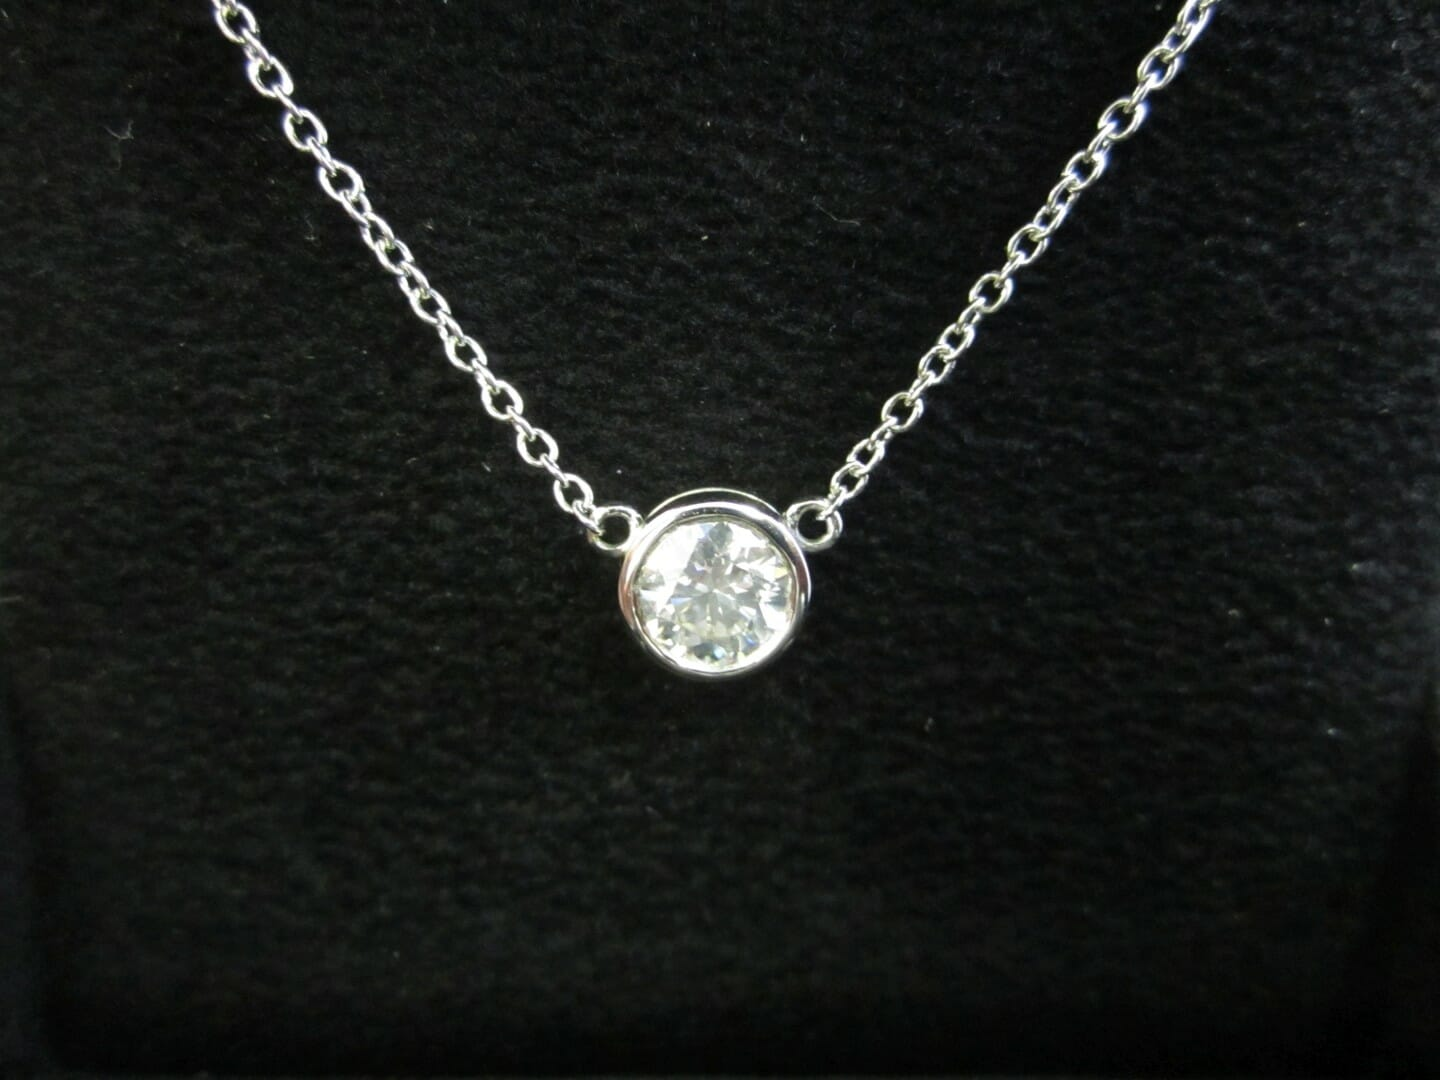 Picture of 1.08ct Round Brilliant Diamond set in a White Gold Bezel Pendant